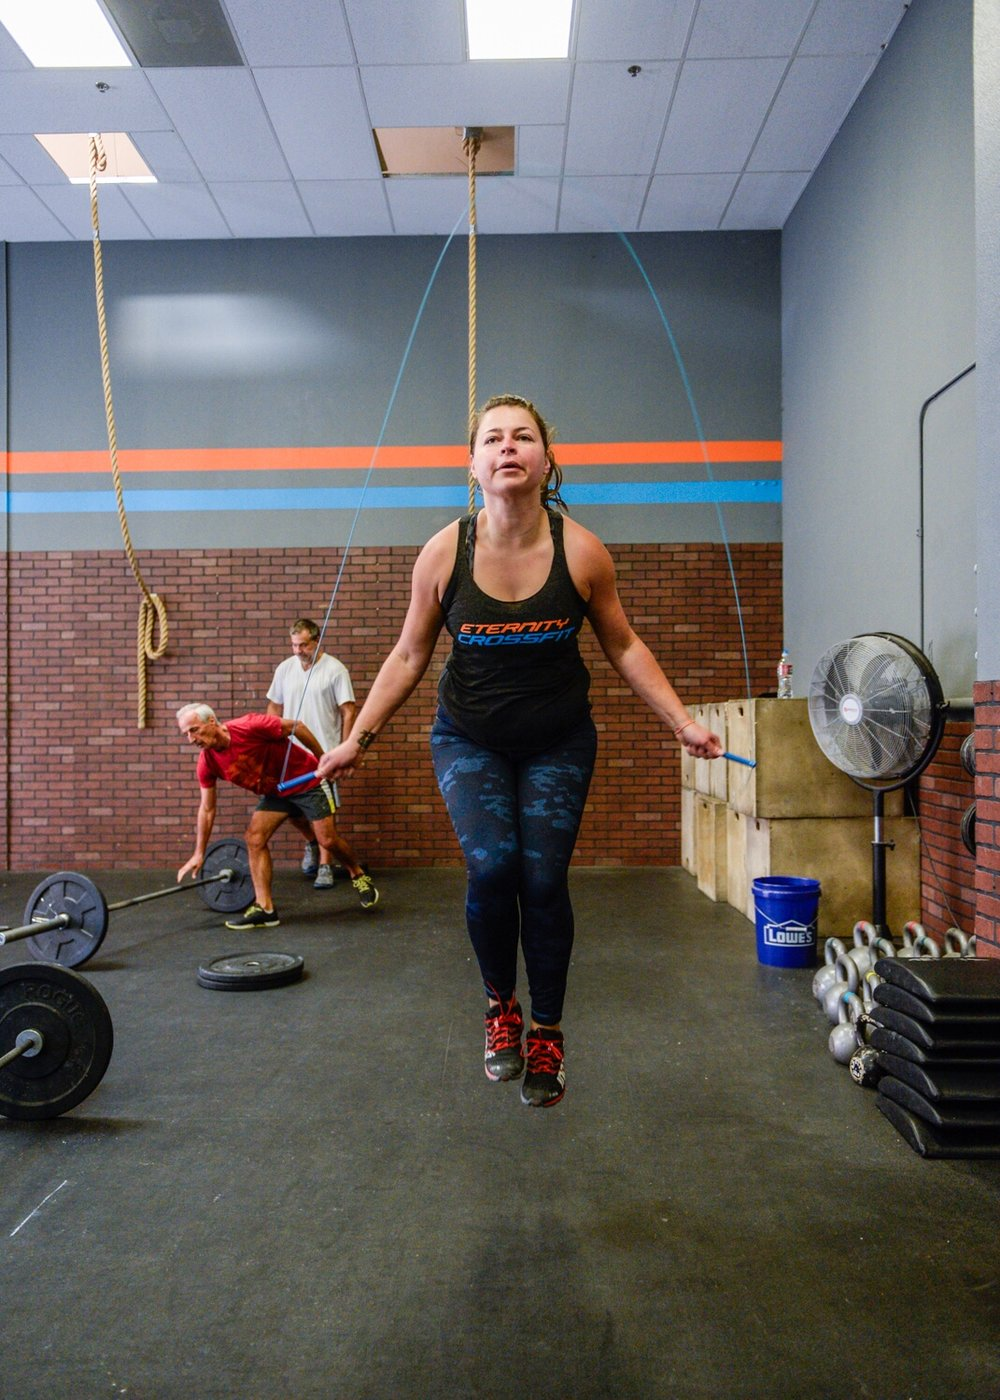 eternity-crossfit-double-unders.JPG